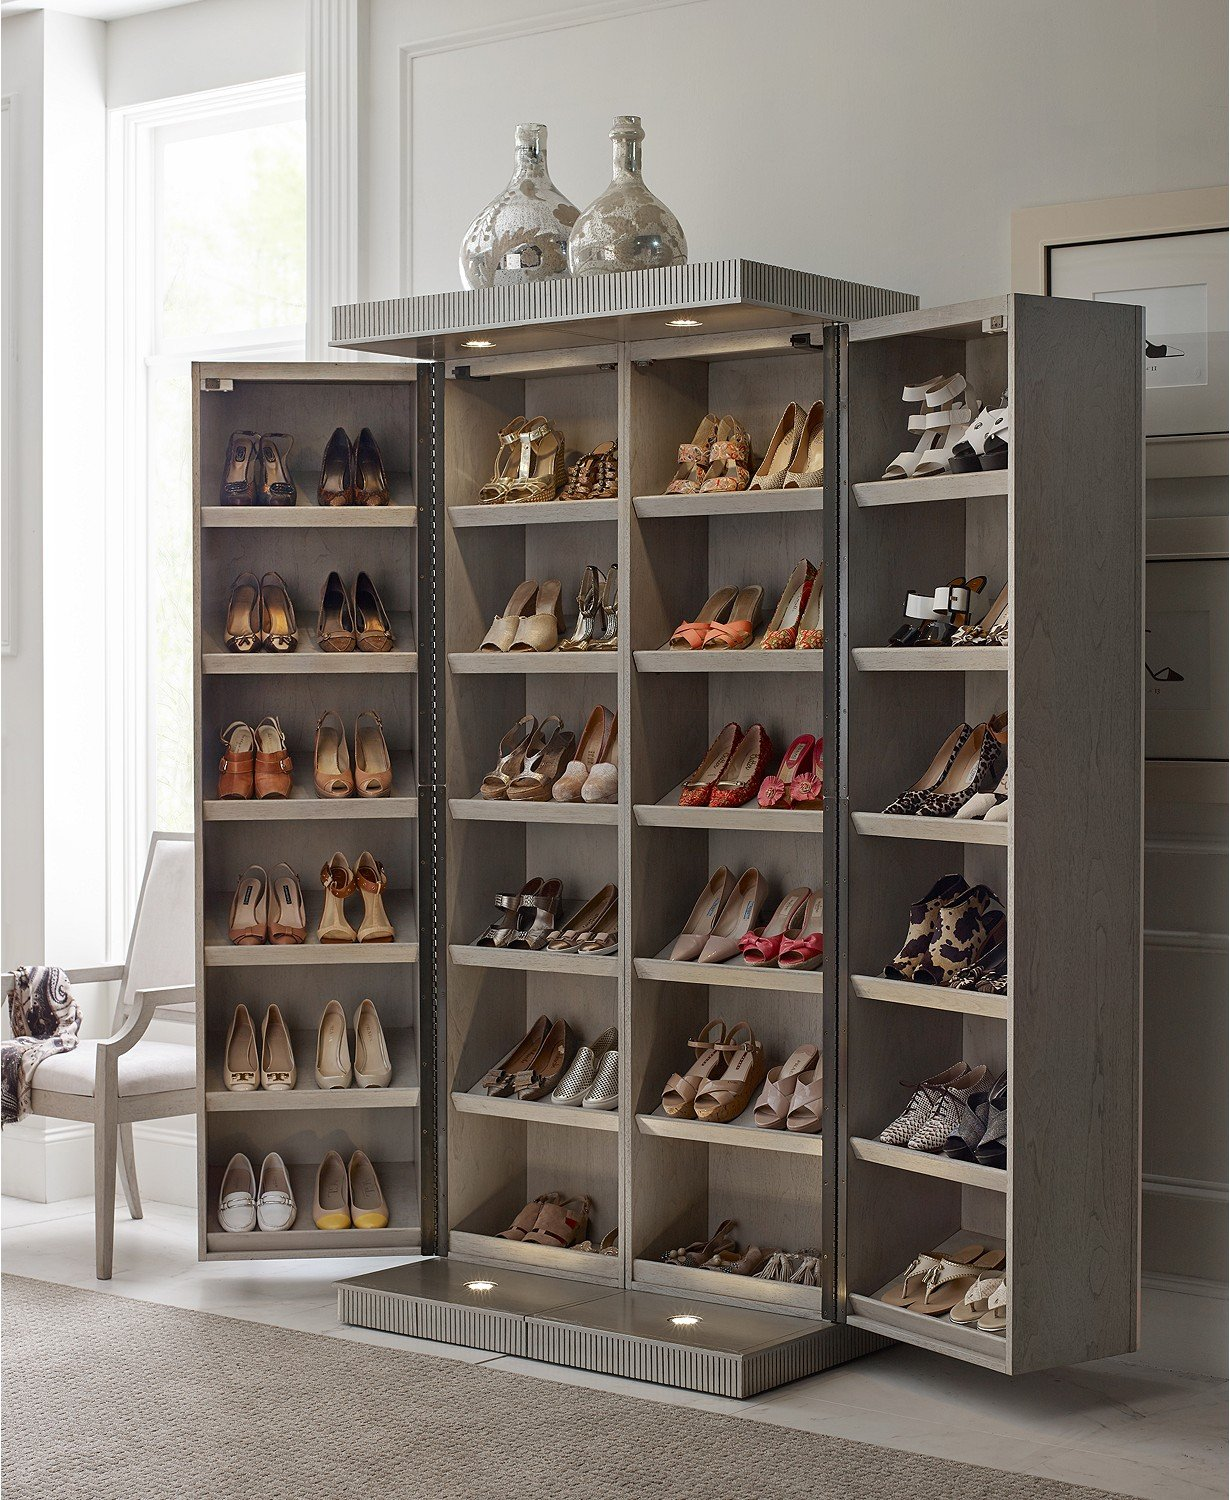 Why not displaying shoes at home?